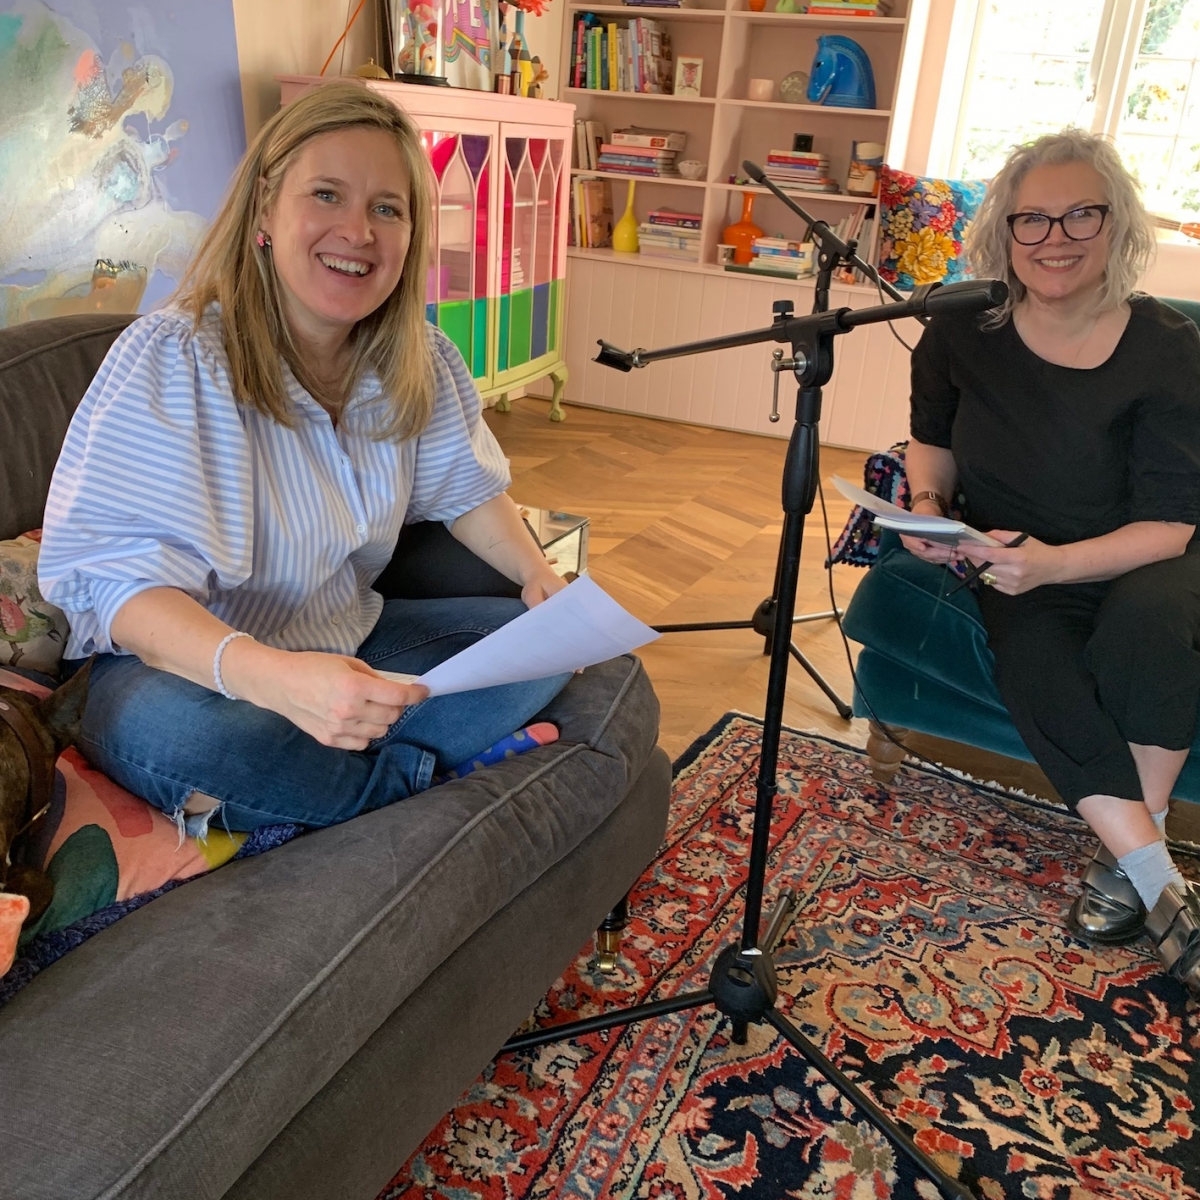 Kate Watson-Smyth and Sophie Robinson recording The Great Indoors podcast at Sophie's house. Discussing many design dilemmas and design crimes. Budget home updates, children's rooms and Instagram ready interiors. #sophierobinson #interiordesign #podcast